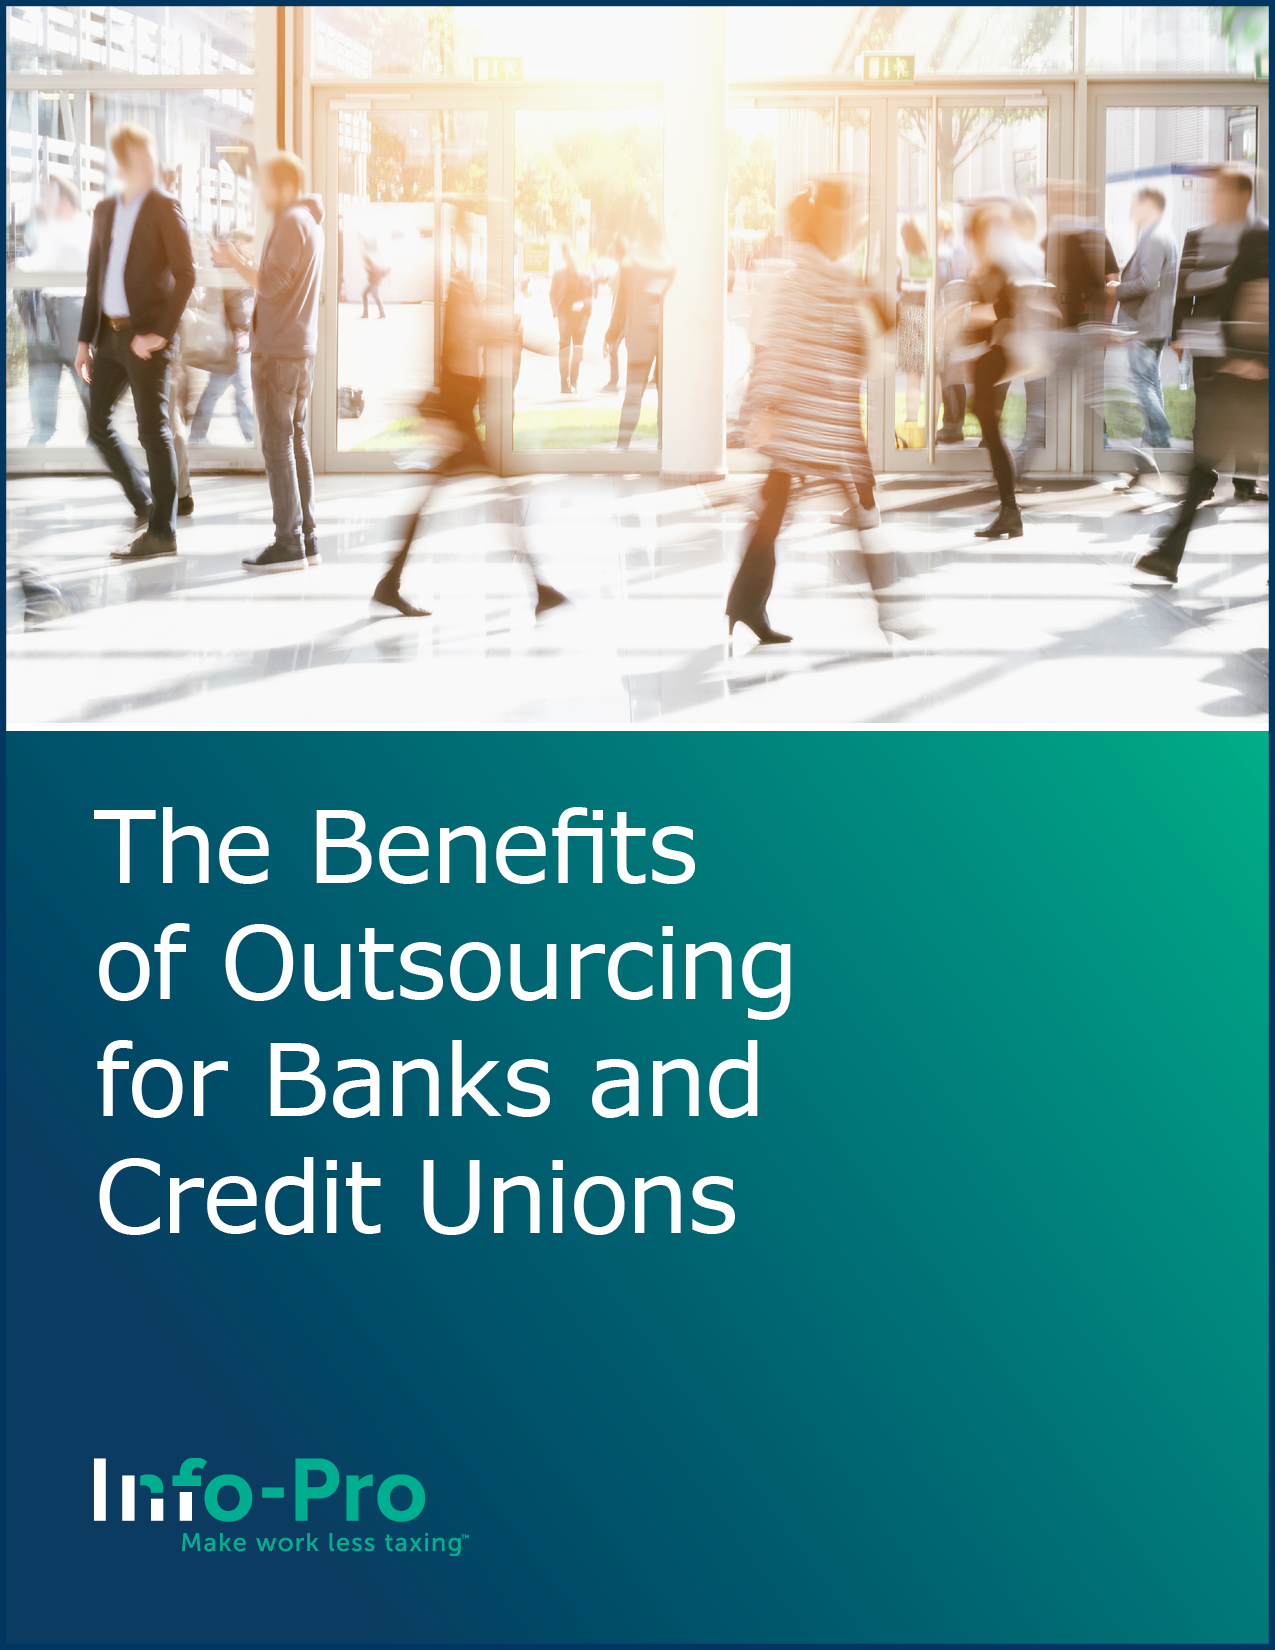 eBook: The Benefits of Outsourcing for Banks and Credit Unions